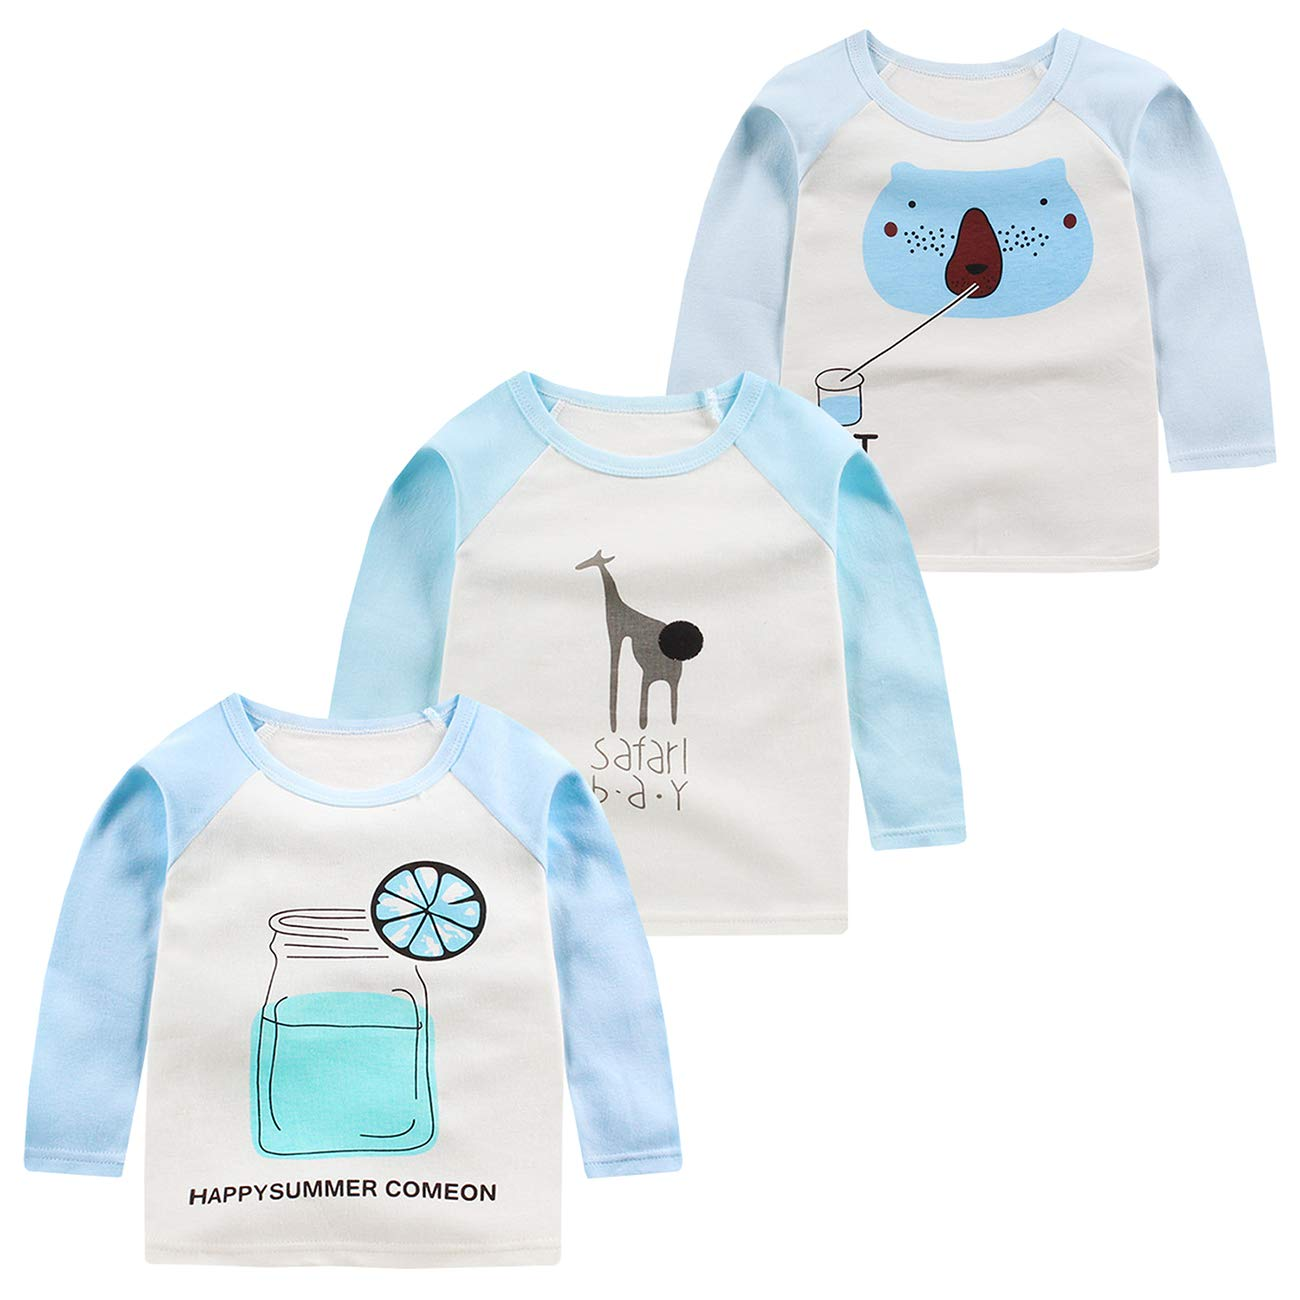 ALLAIBB Baby Boy and Girl Long Sleeve Shirt Cute Print Round Neck Pullover 3Pcs